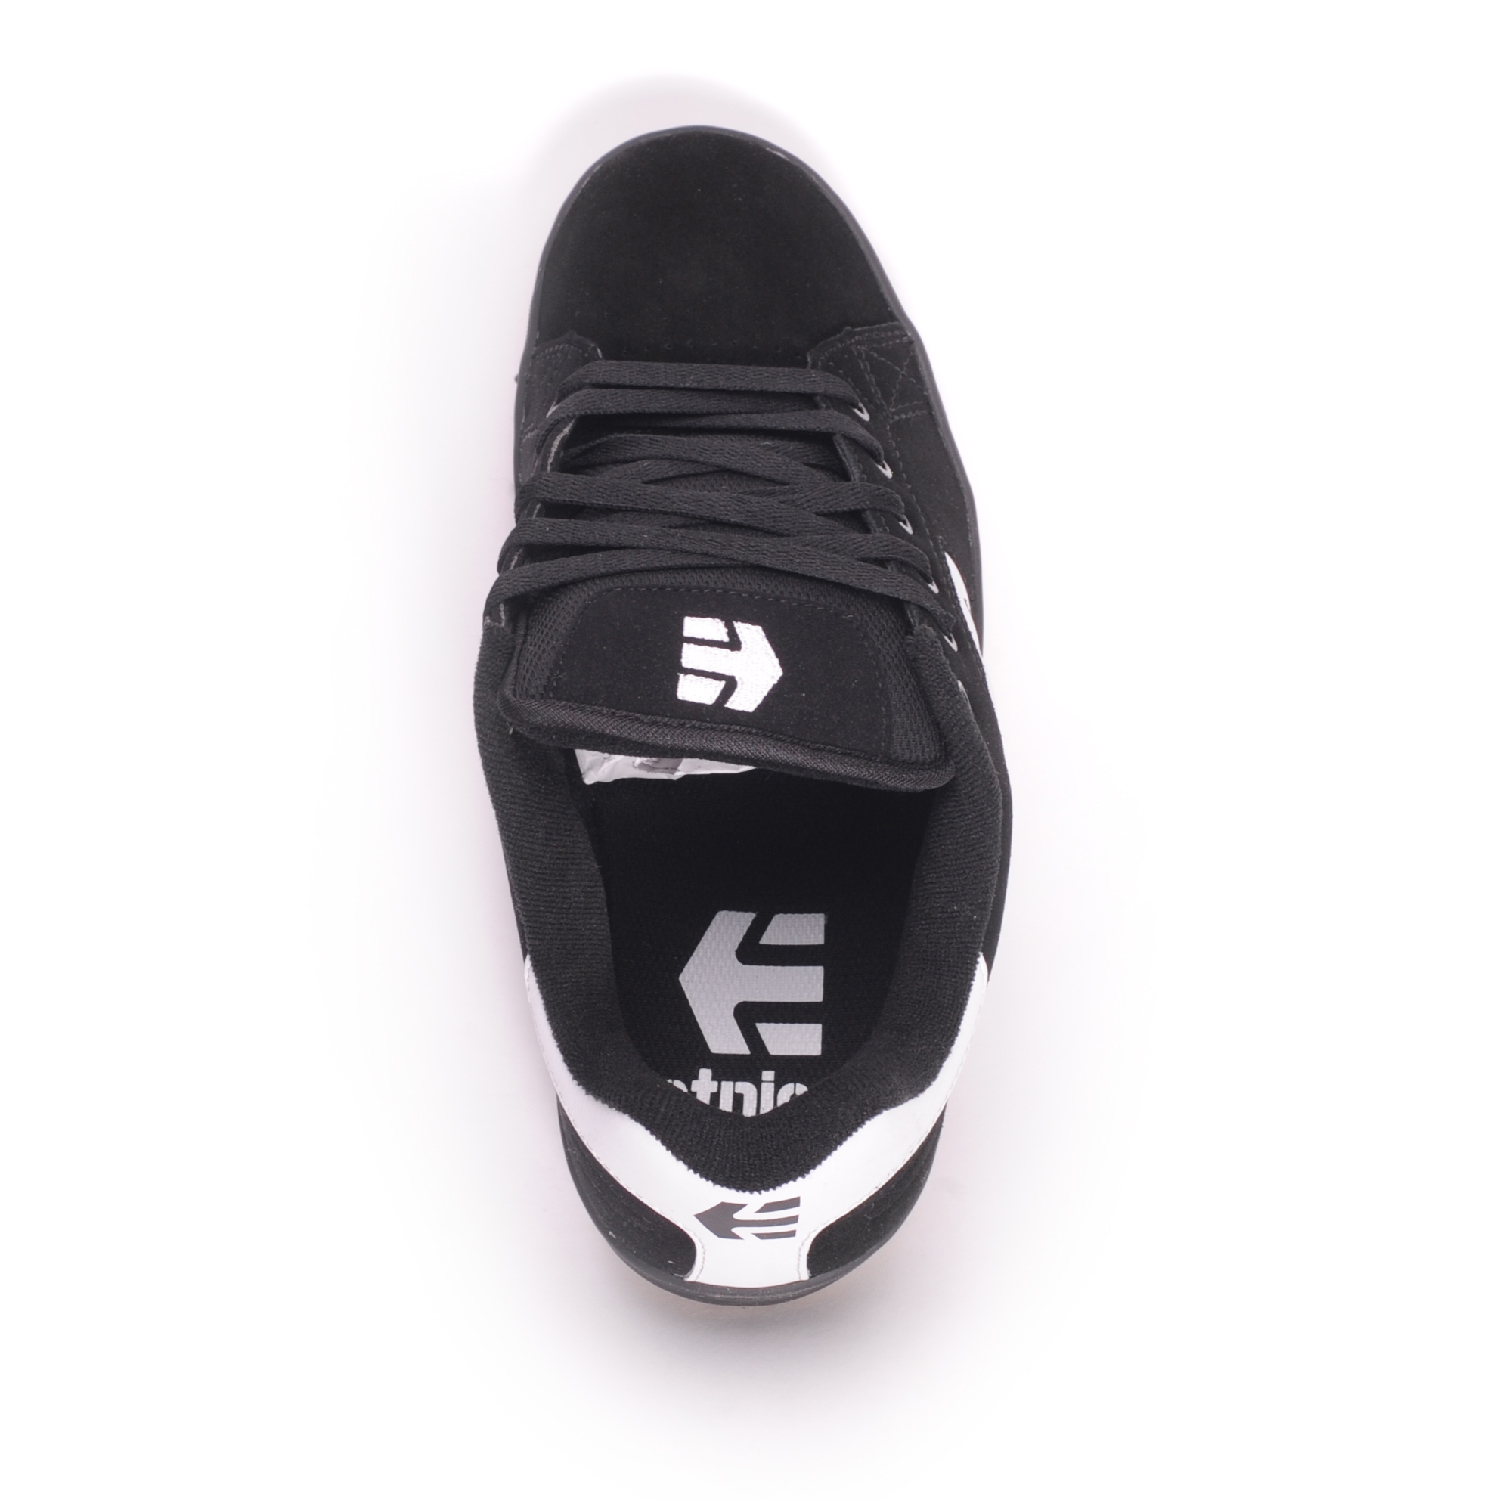 Etnies-Calli-Cut-Black-White-Black-Men-039-s-Skate-Shoes thumbnail 4